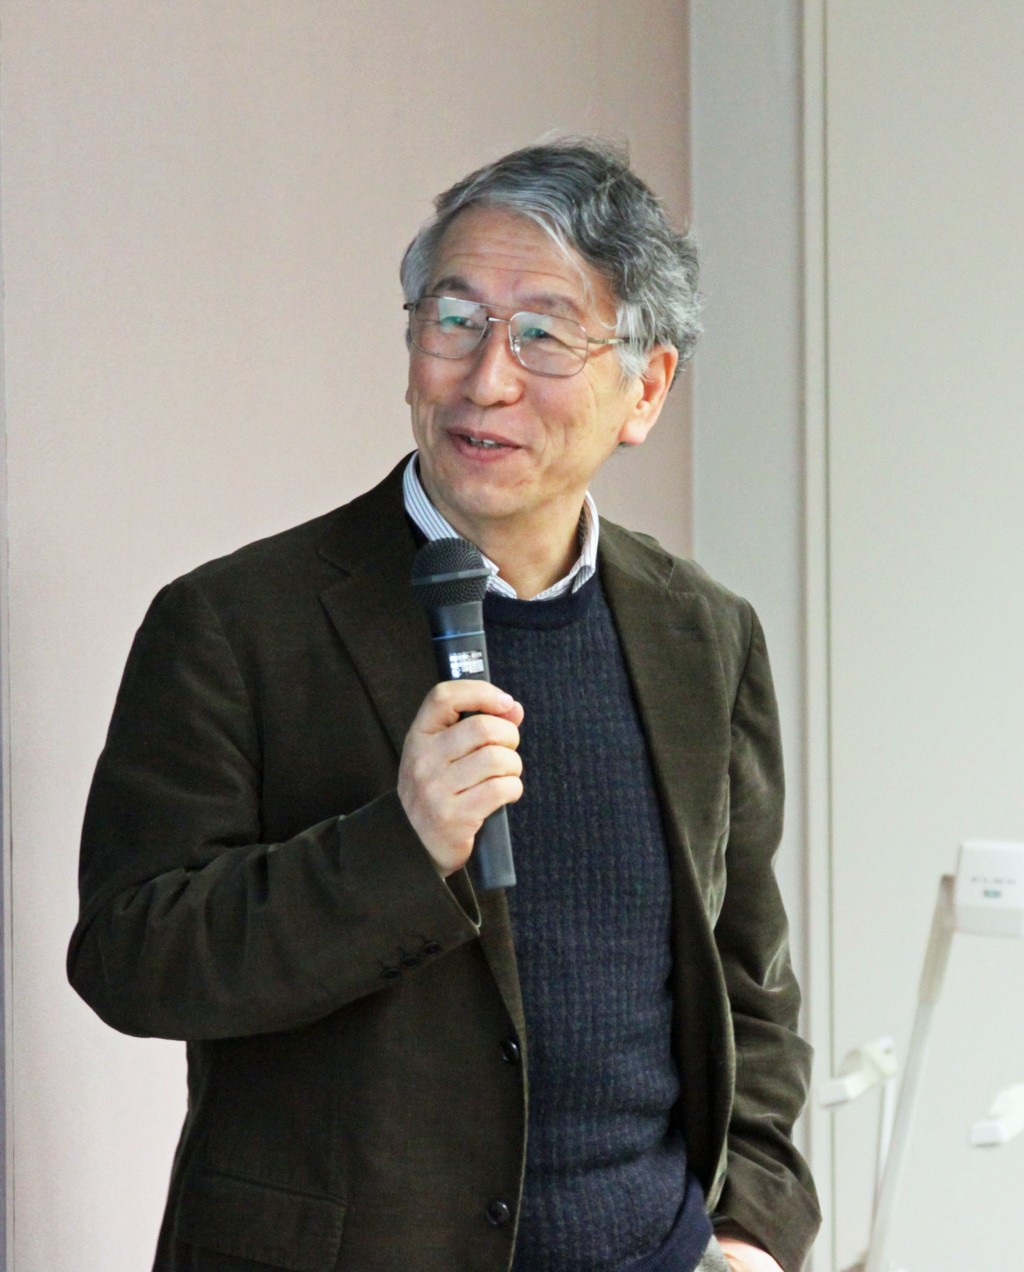 Atsuto Suzuki, KEK director general, addresses the superconducting radiofrequency Baseline Technical Review. Image: ILC